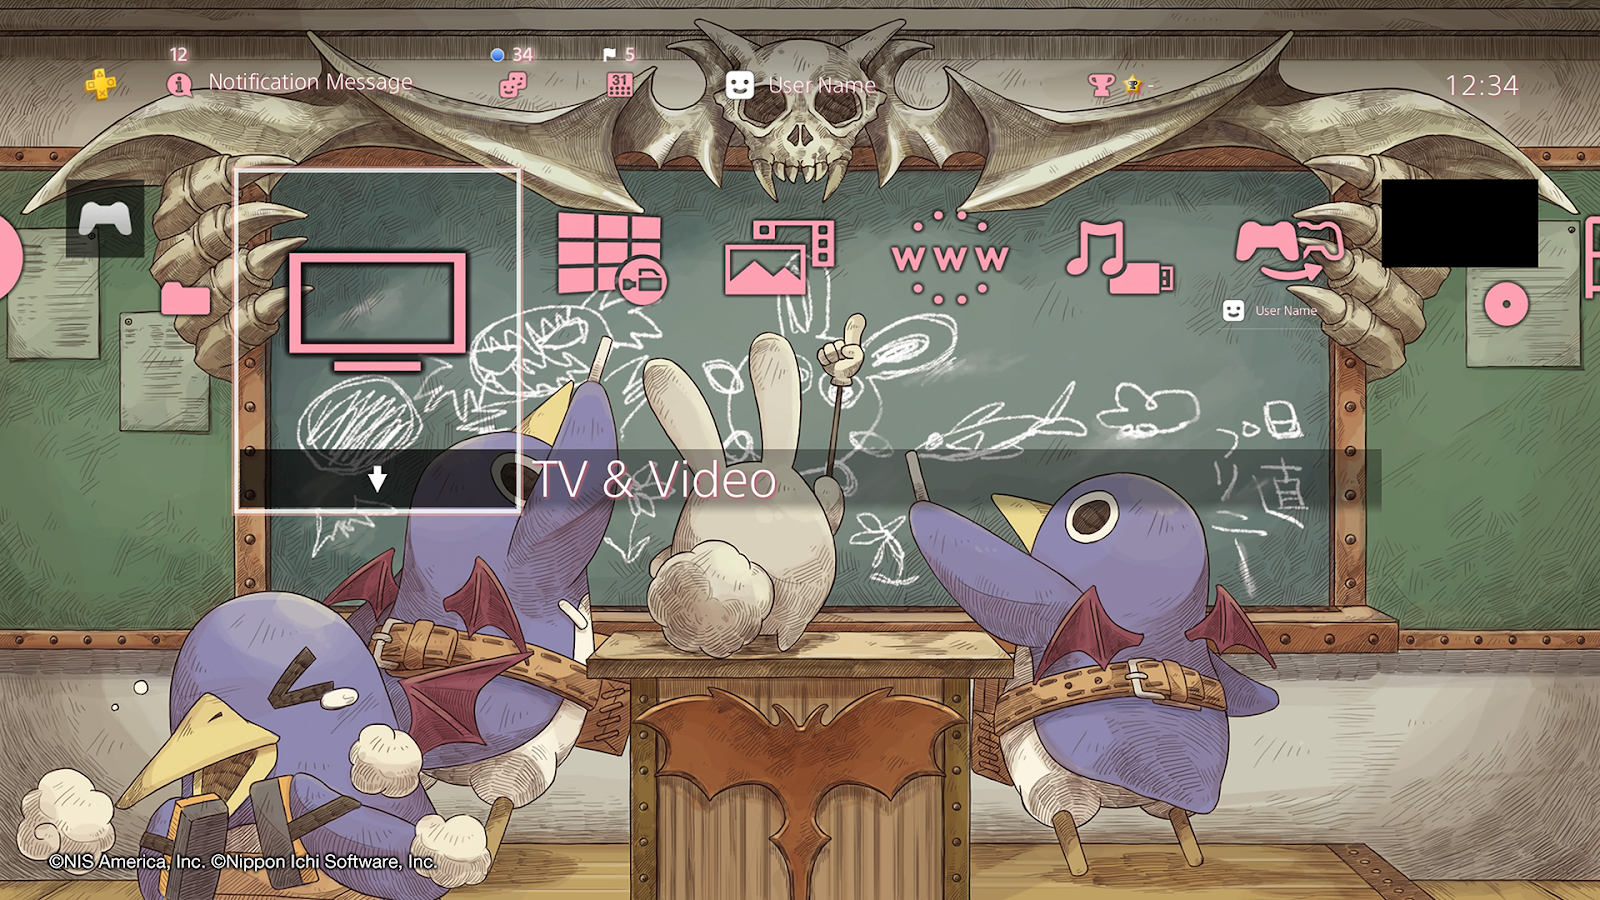 Grab These Free Disgaea Themes and Avatars for Your PS4